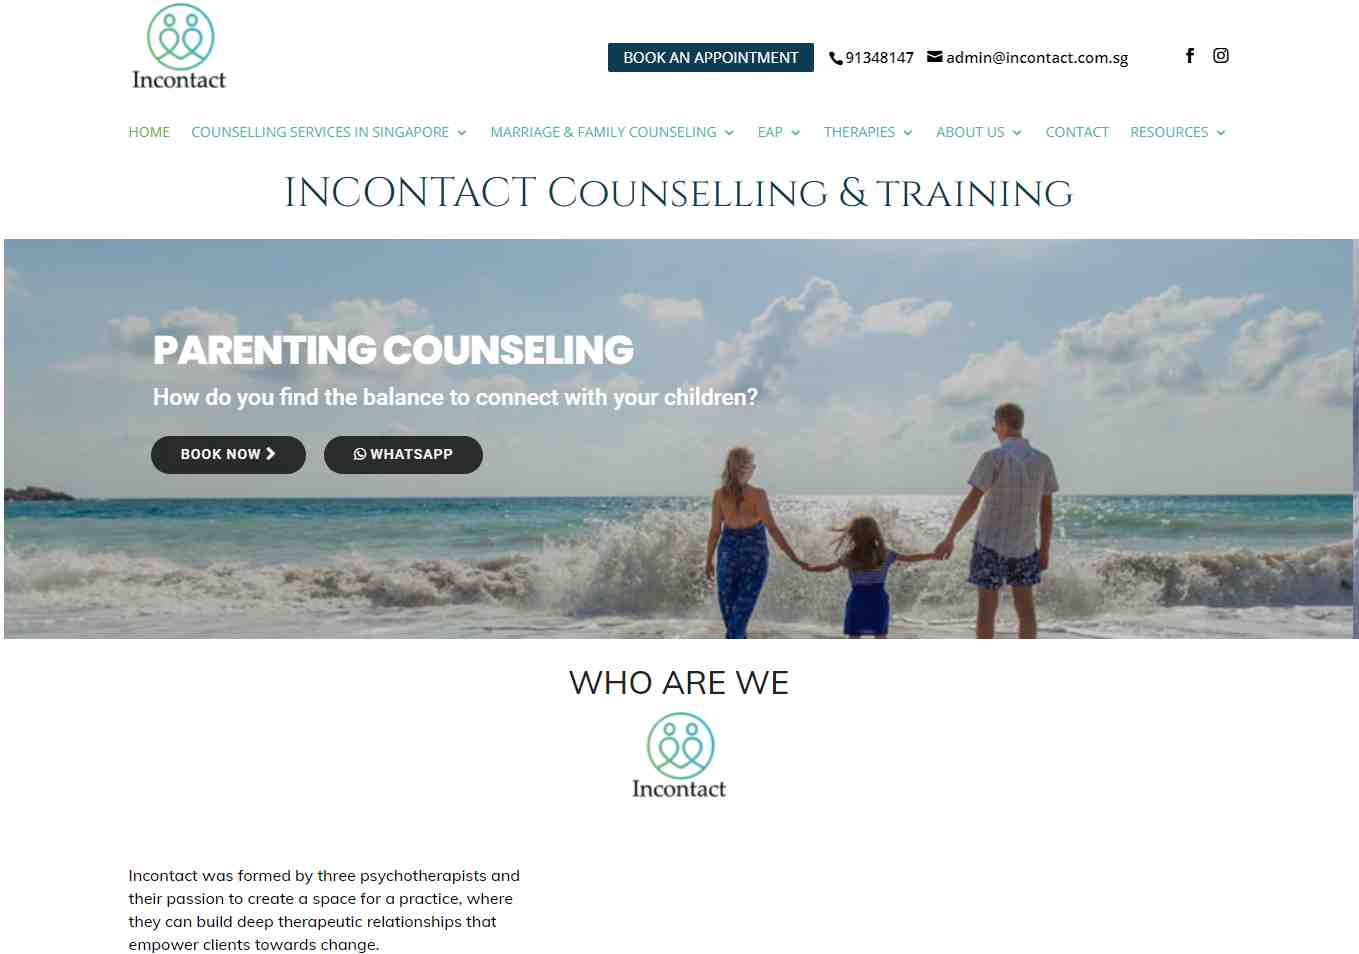 incontact-top-child-counselling-in-singapore-2